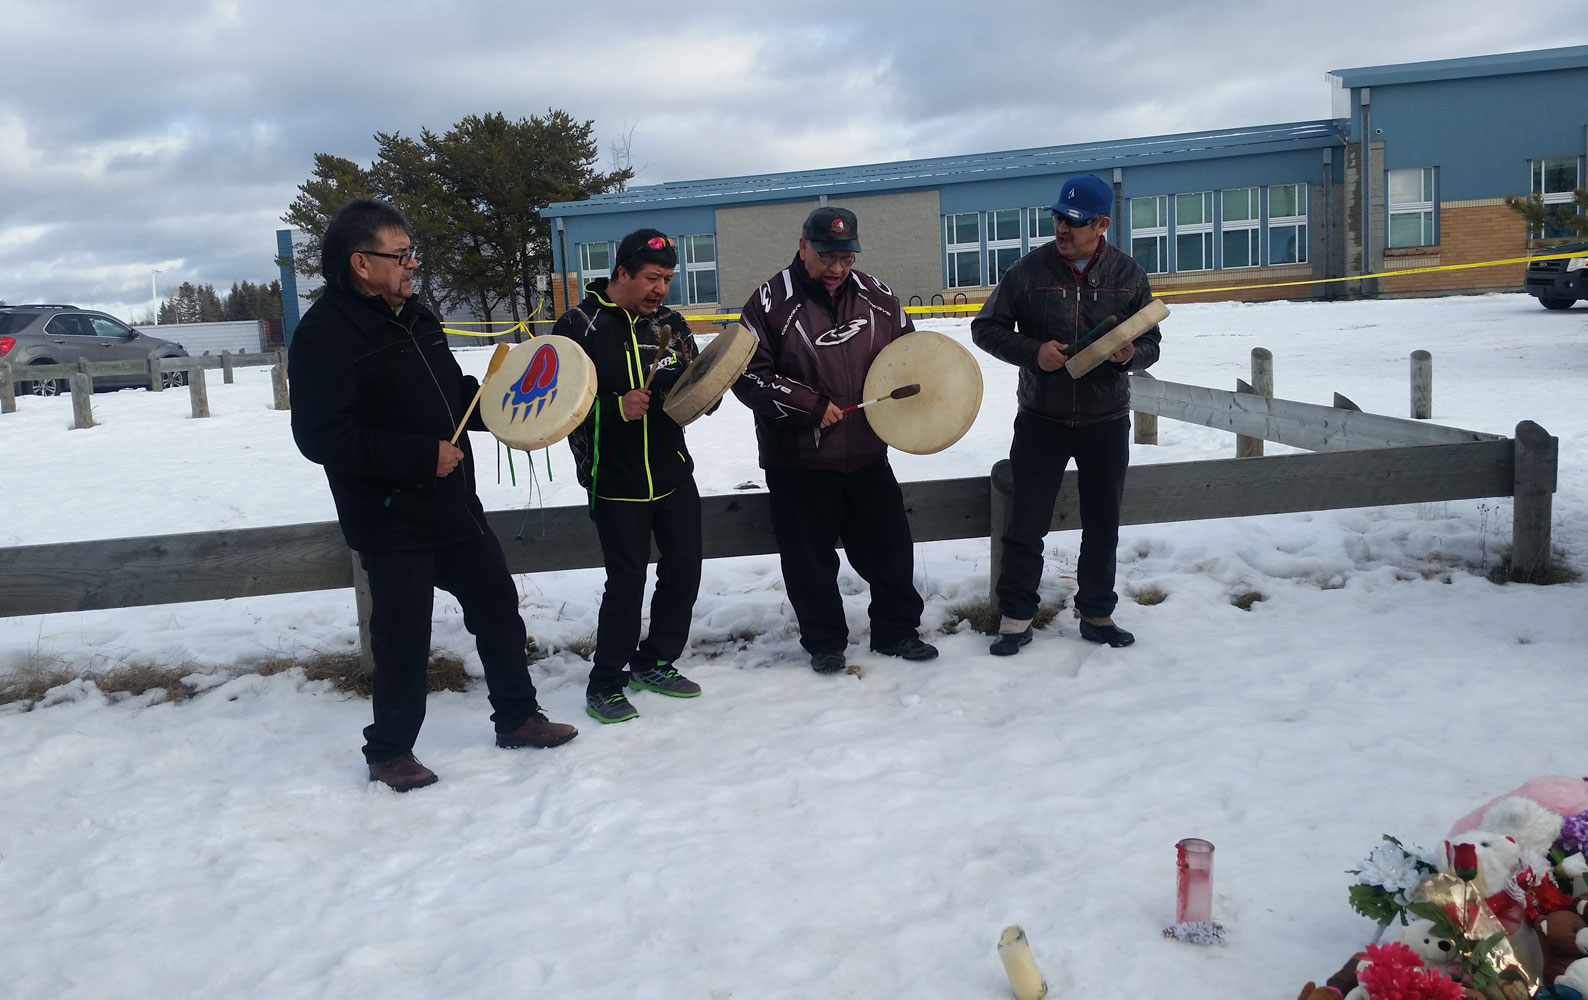 Dene drummers during the visit from Prime Minister Justin Trudeau.